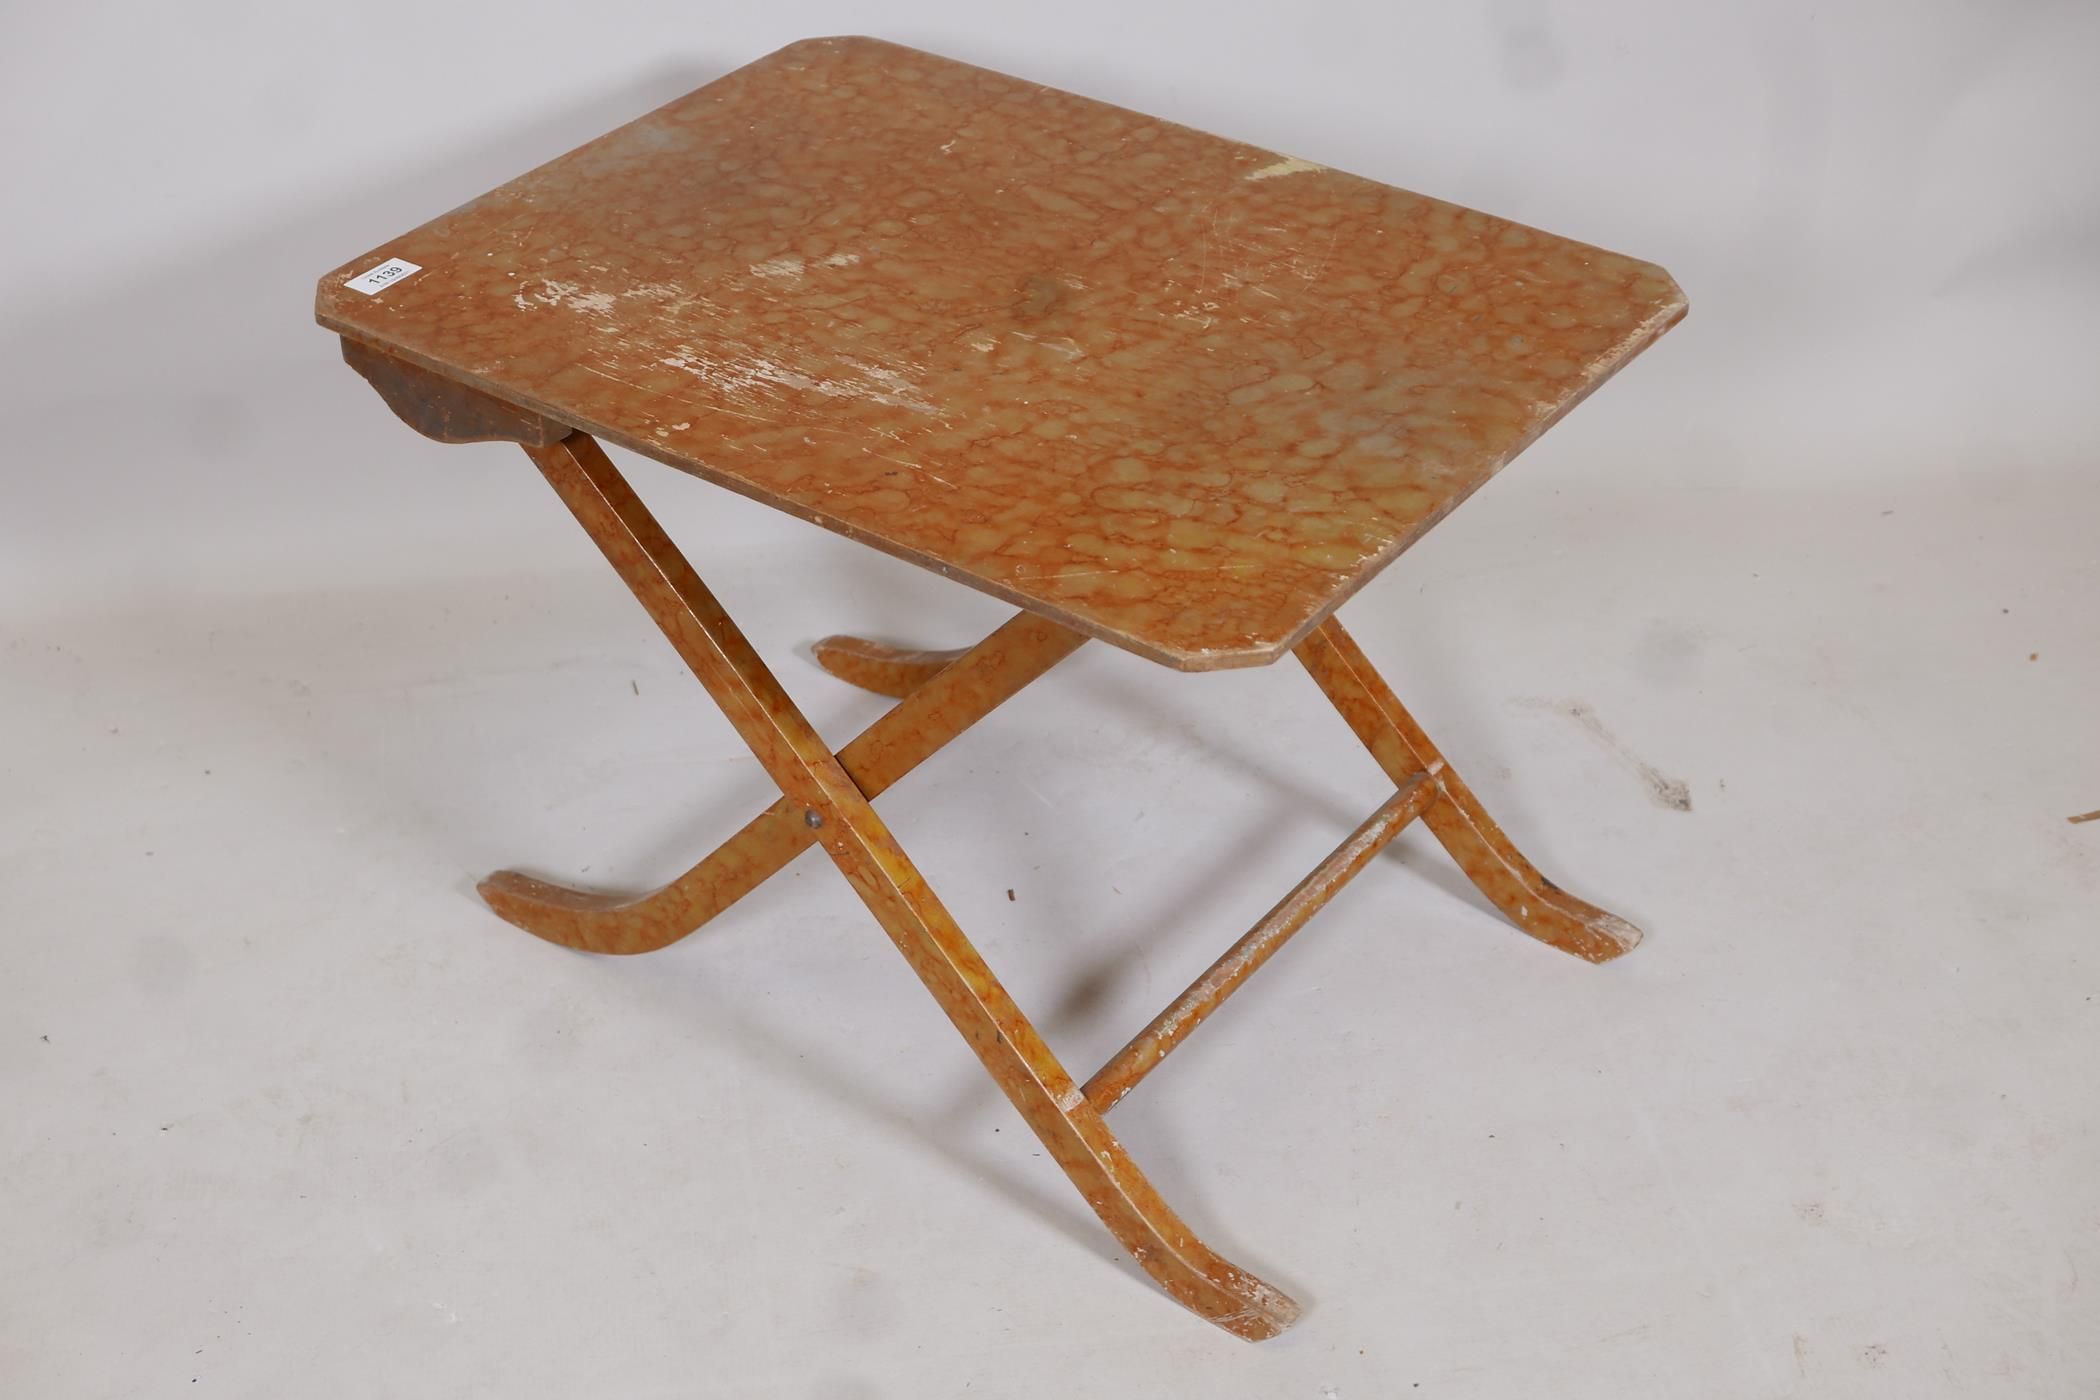 A metamorphic table/chair, early C20th, in original painted finish - Image 4 of 4